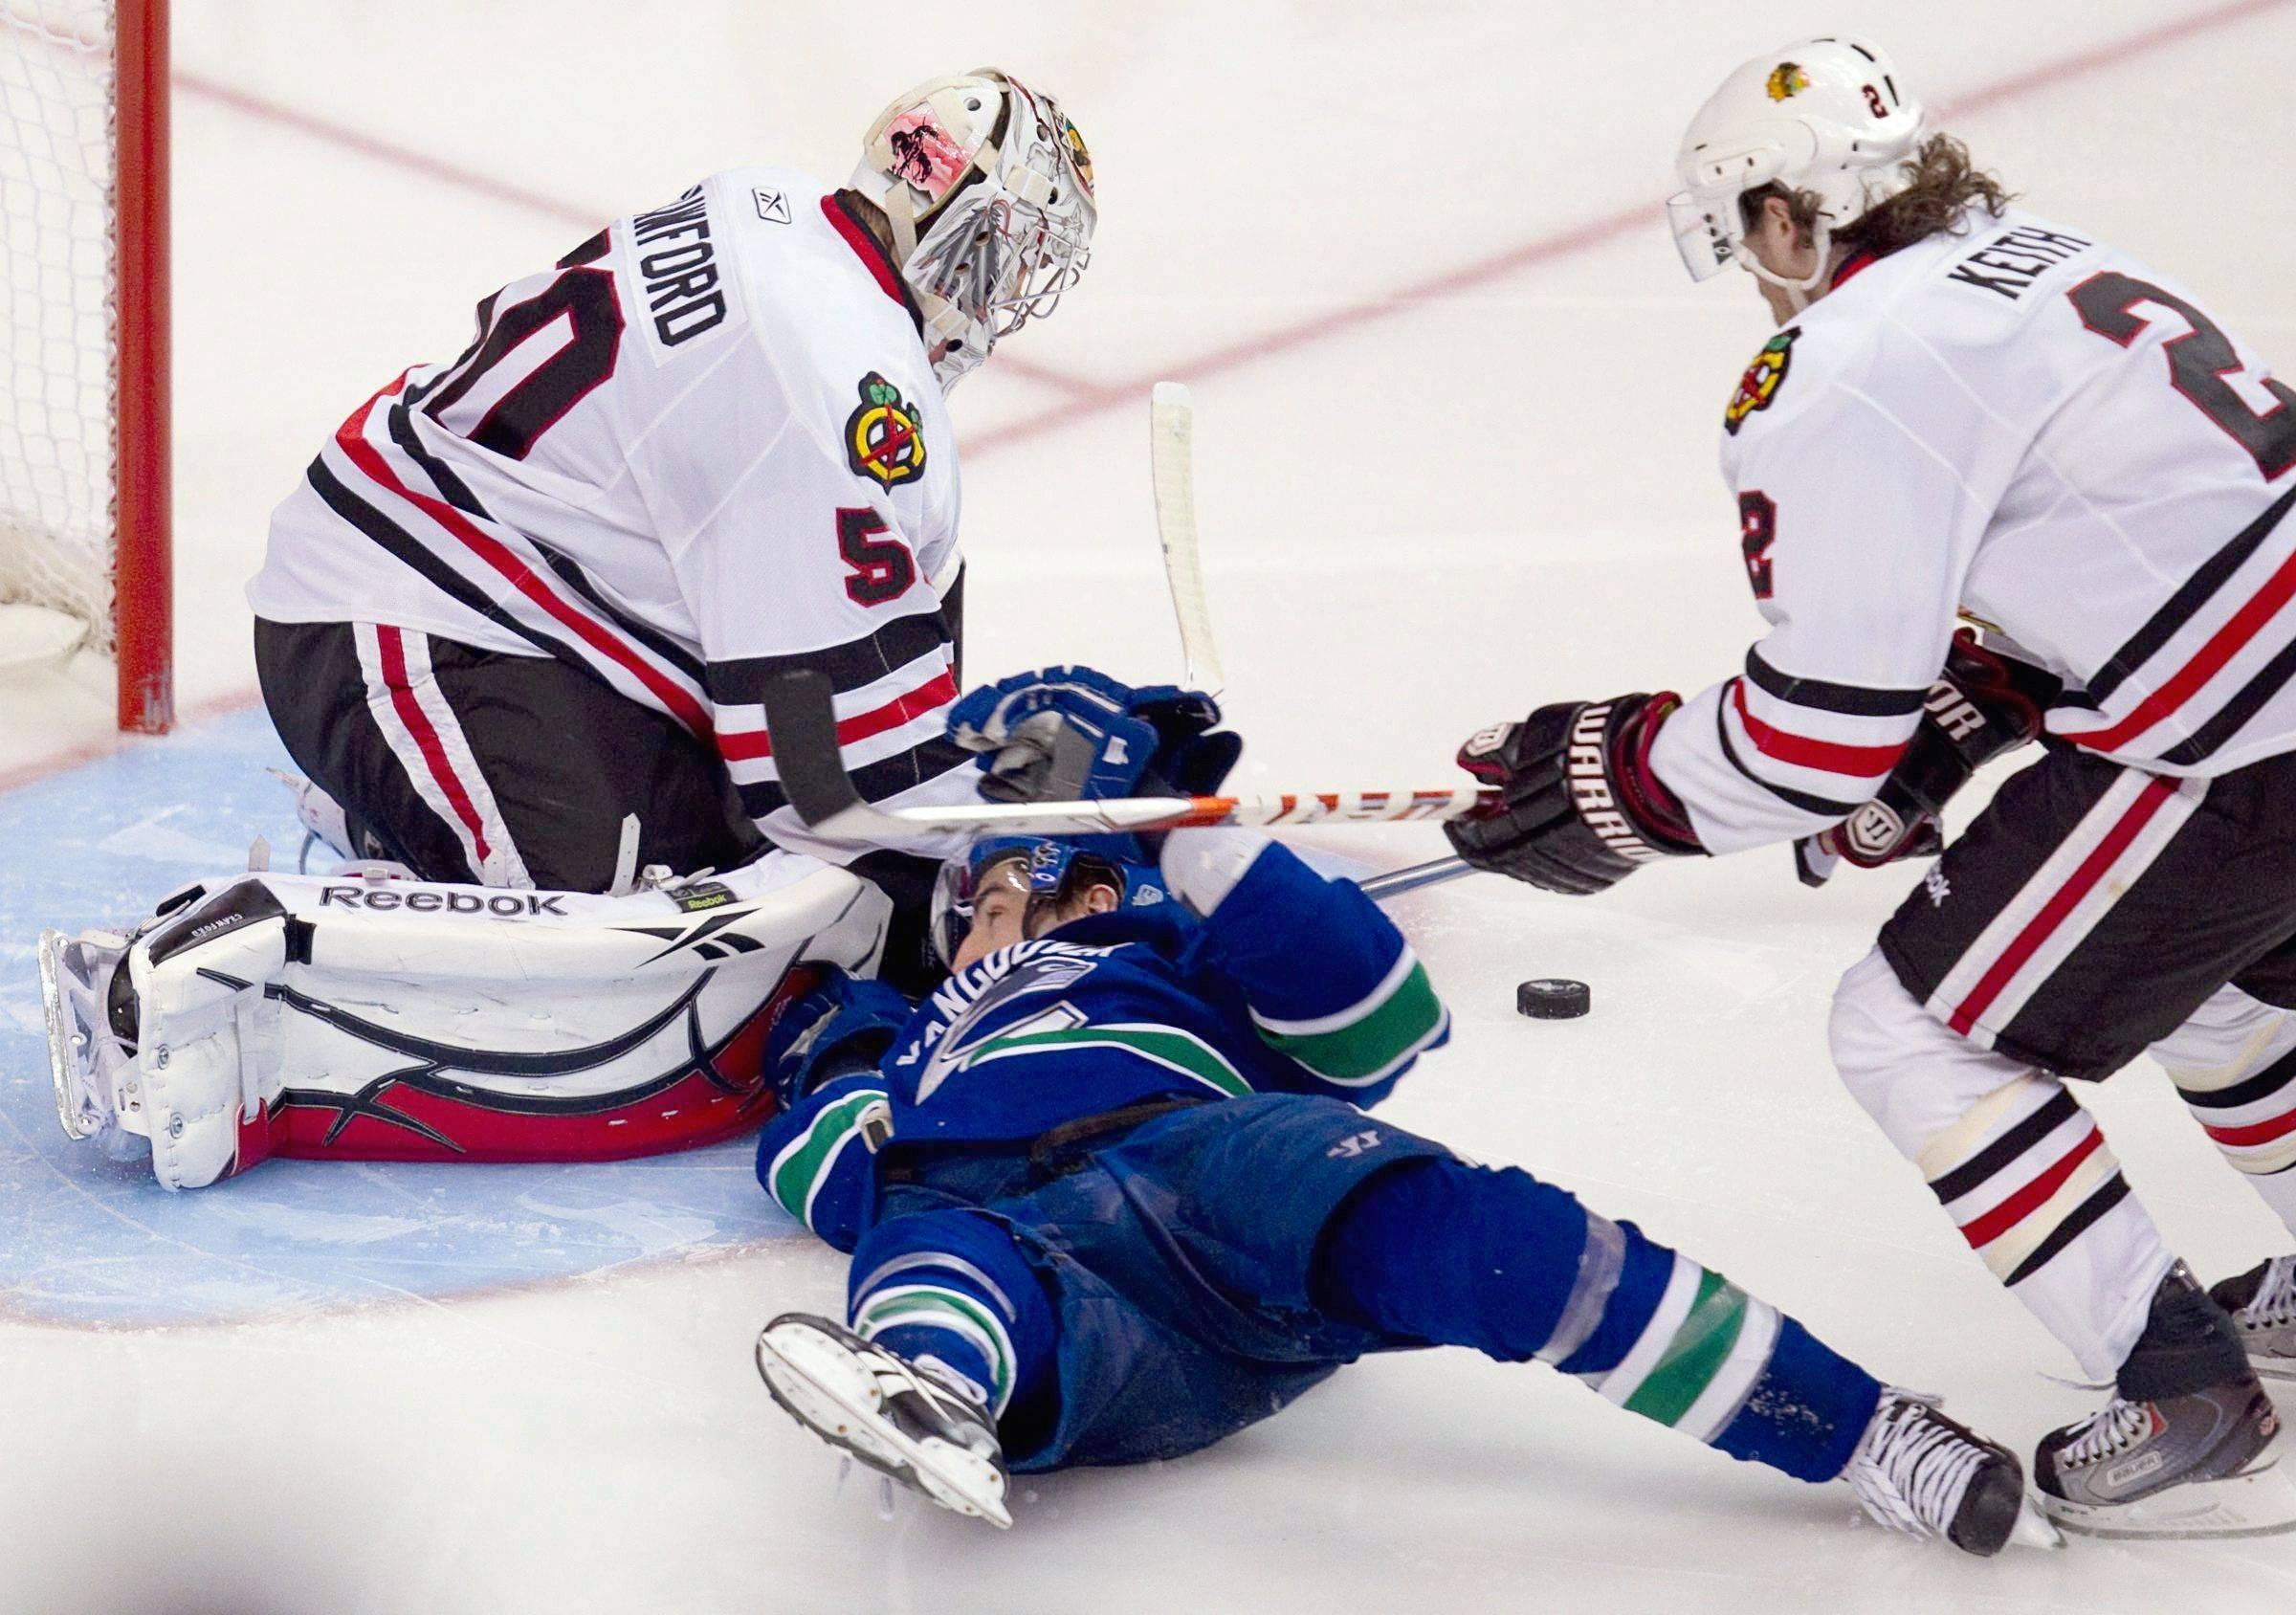 Vancouver Canucks' Alex Burrows slides into Chicago Blackhawks' goaltender Corey Crawford after being tripped by Chicago's Duncan Keith during the third period of game 7 of an NHL Western Conference quarterfinal Stanley Cup playoff hockey series in Vancouver, British Columbia Tuesday.